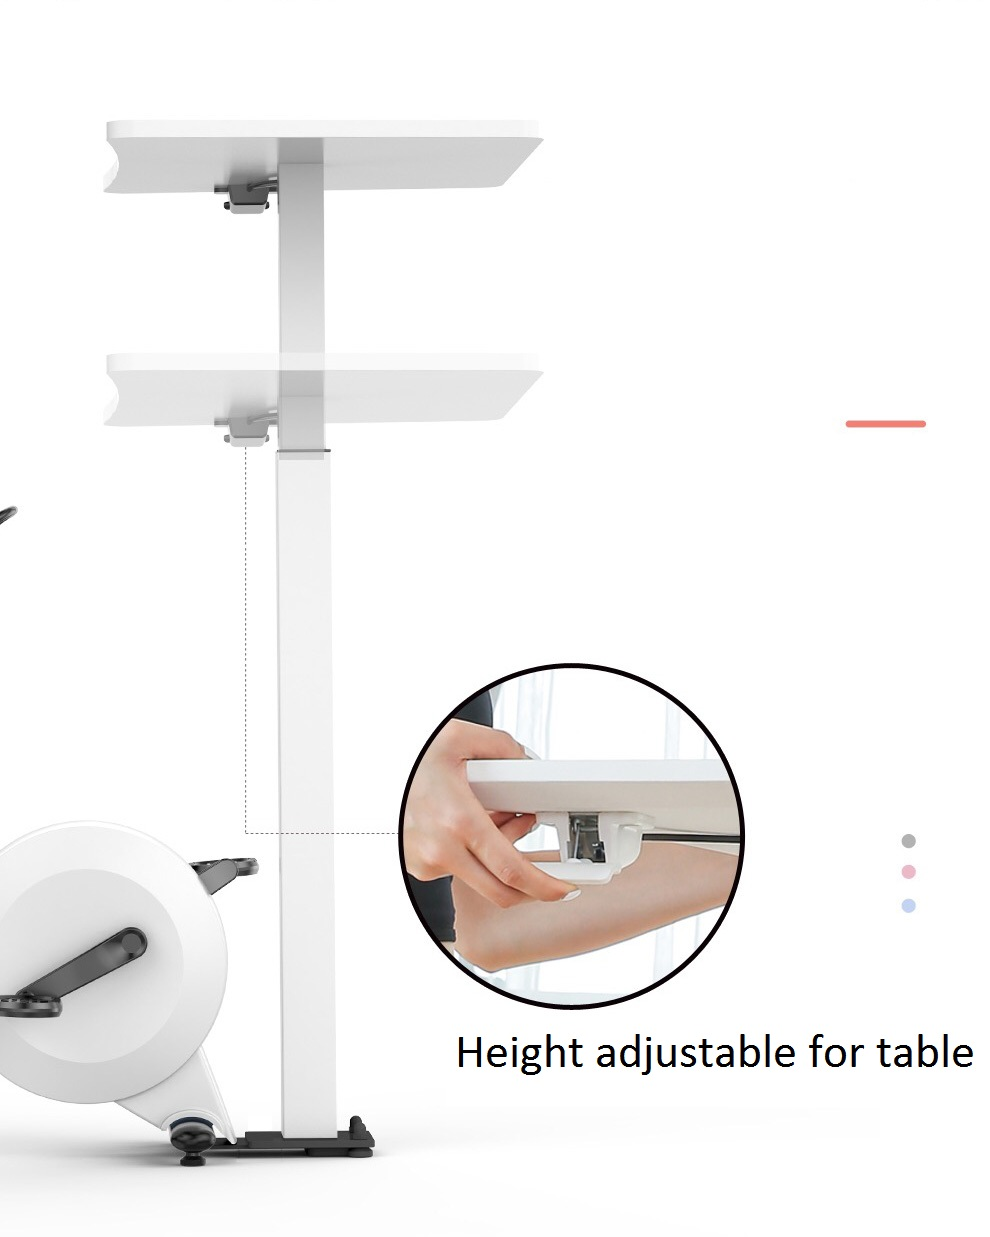 height adjustable for table in office